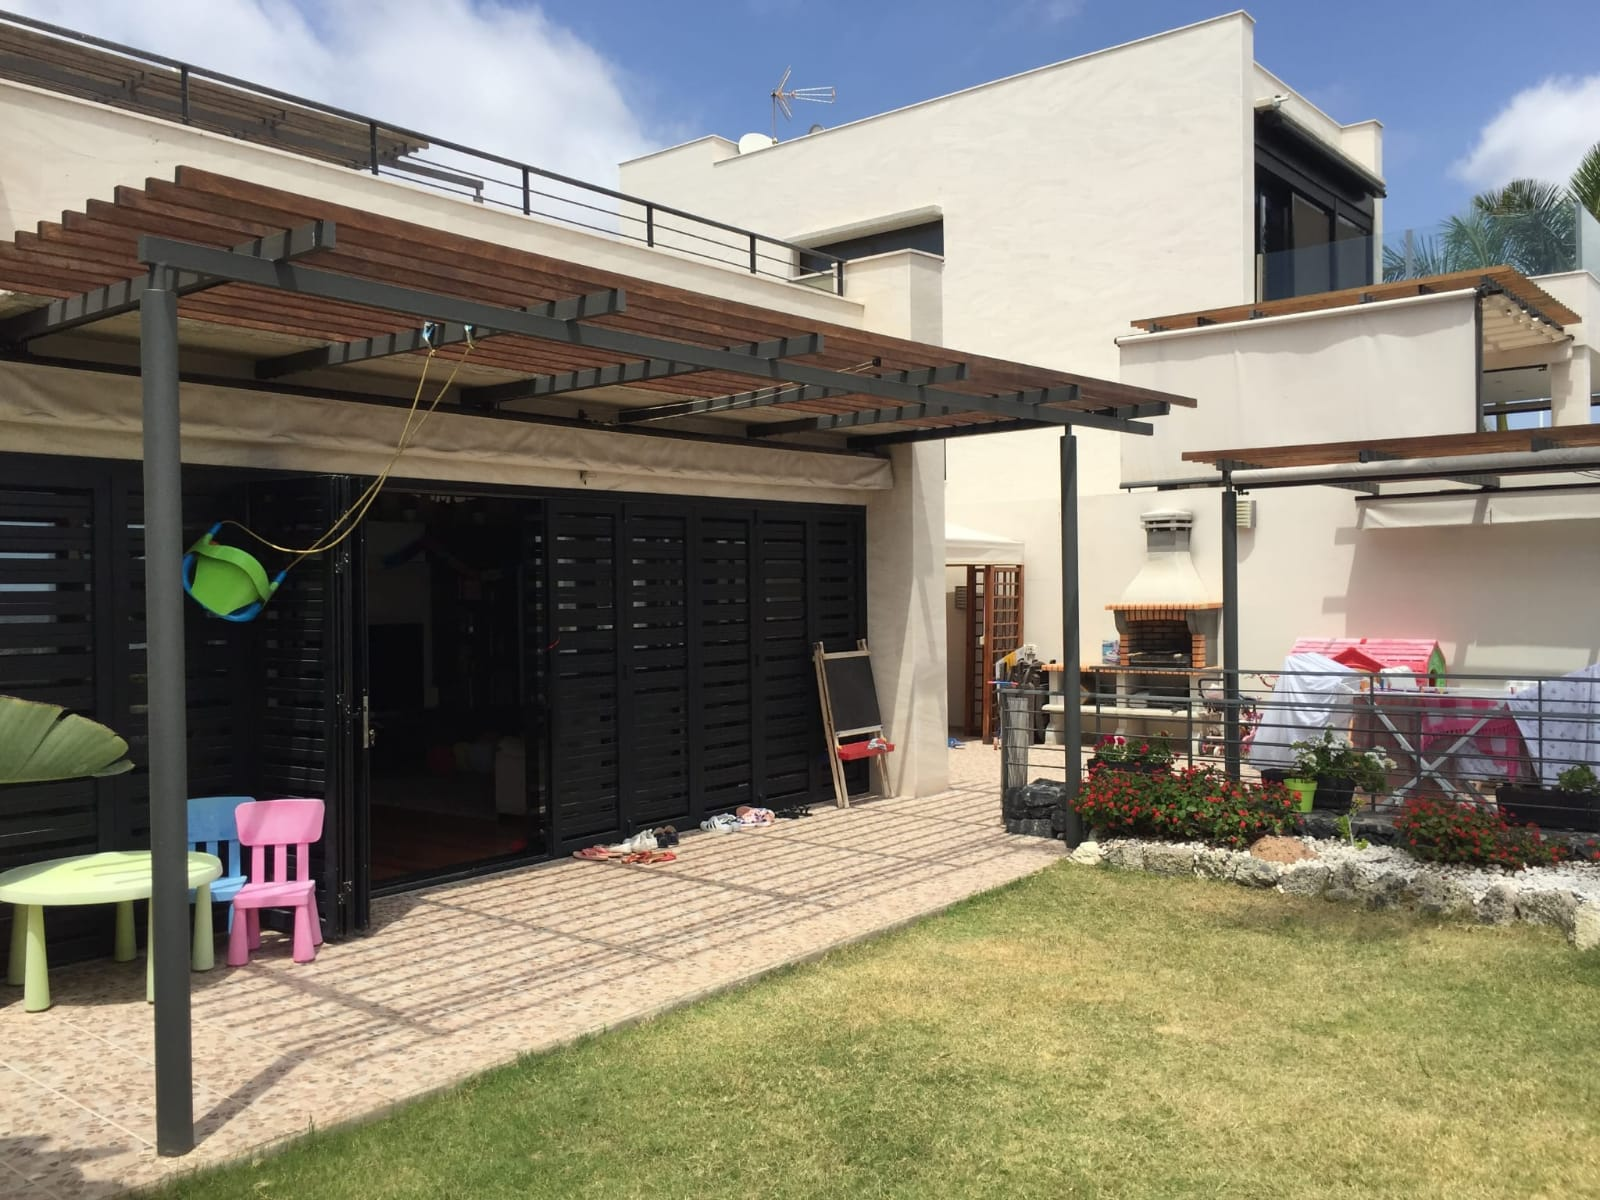 Townhouse for Sale in Tenerife